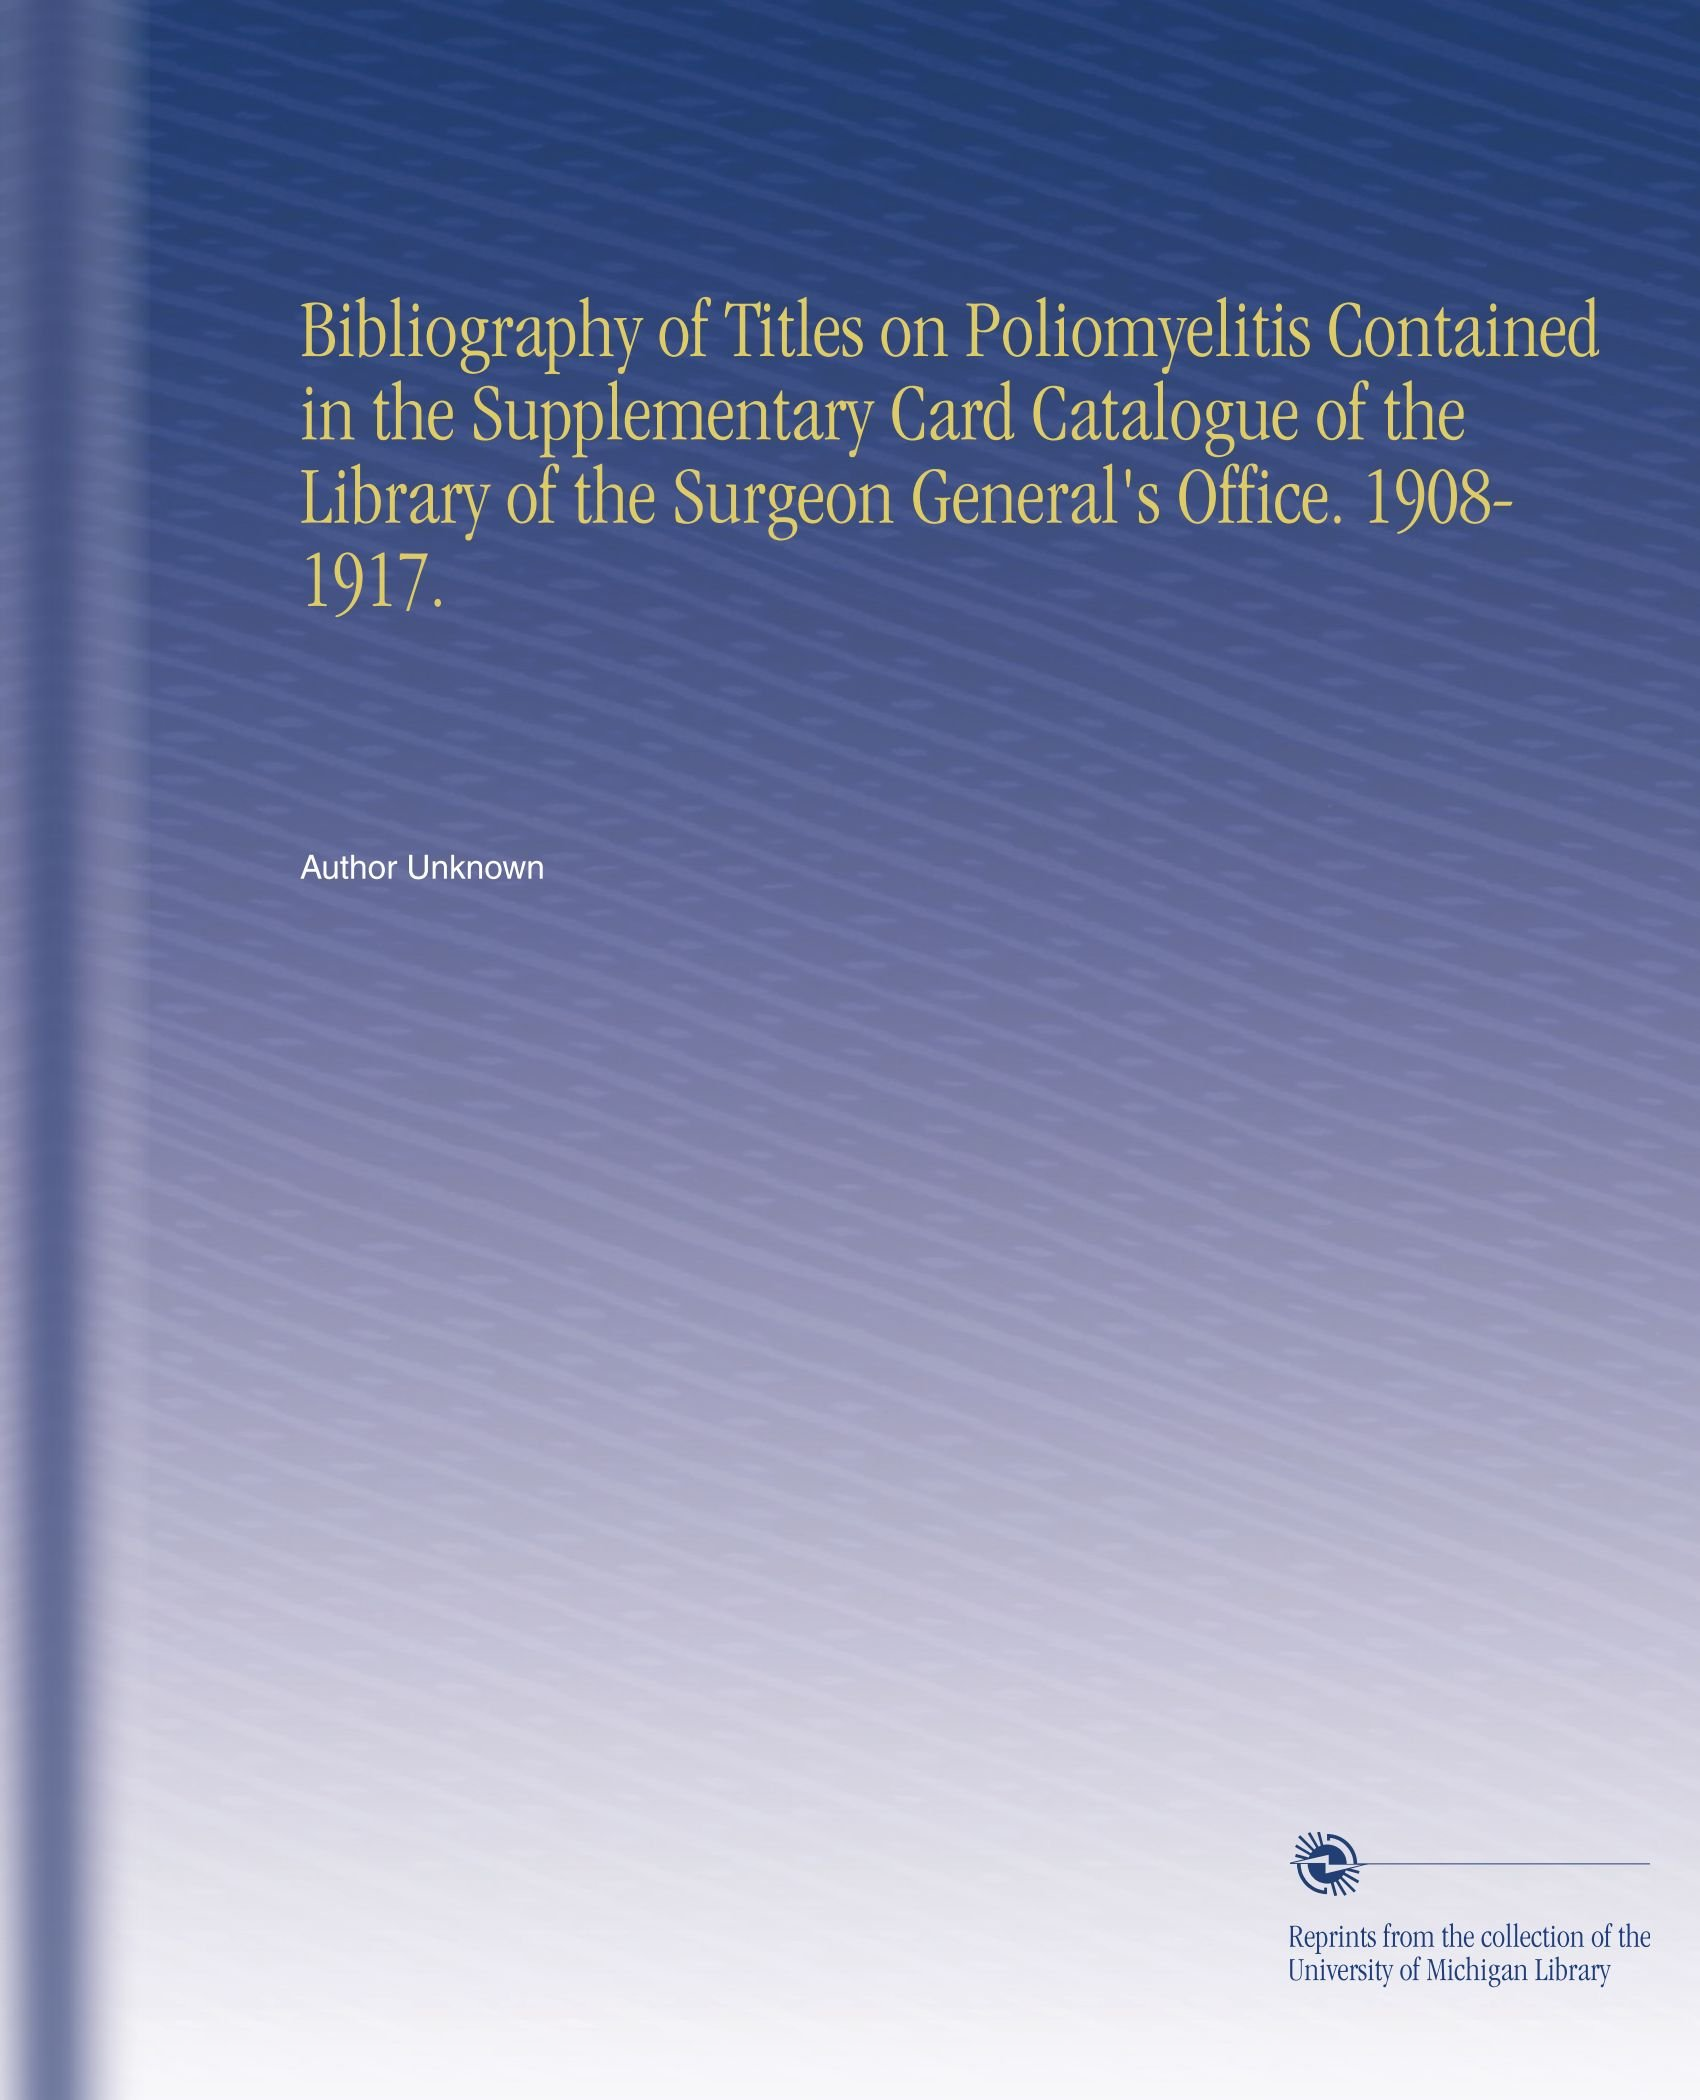 Download Bibliography of Titles on Poliomyelitis Contained in the Supplementary Card Catalogue of the Library of the Surgeon General's Office. 1908-1917. pdf